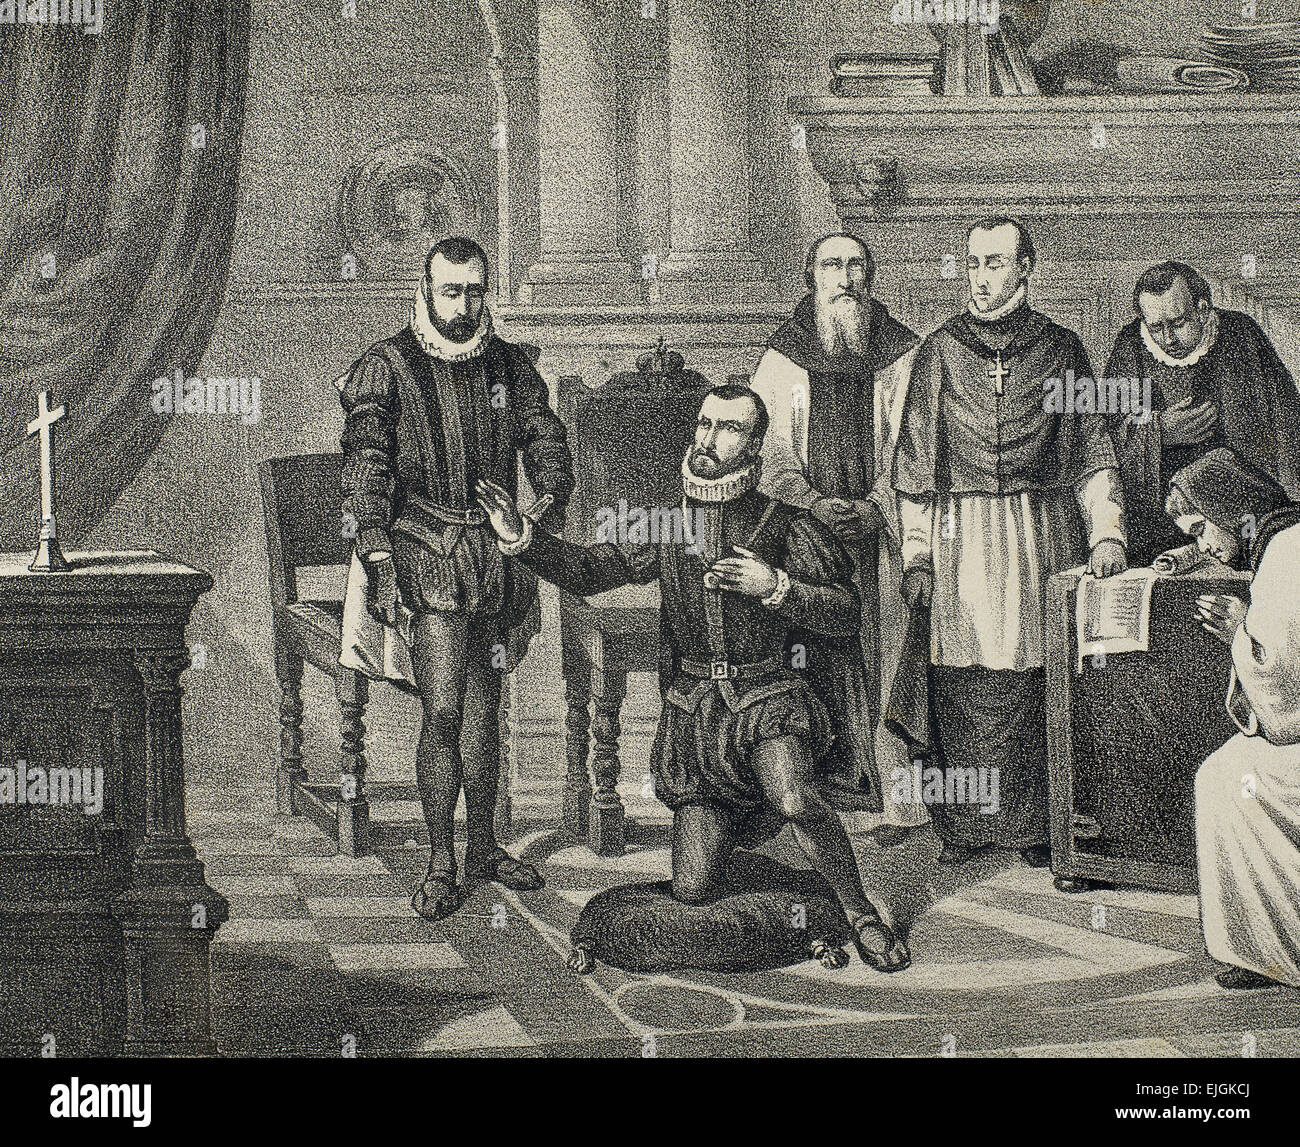 Philip II of Spain (1527-1598). House of Habsburg. King imploring God. Engraving. 19th century. Stock Photo